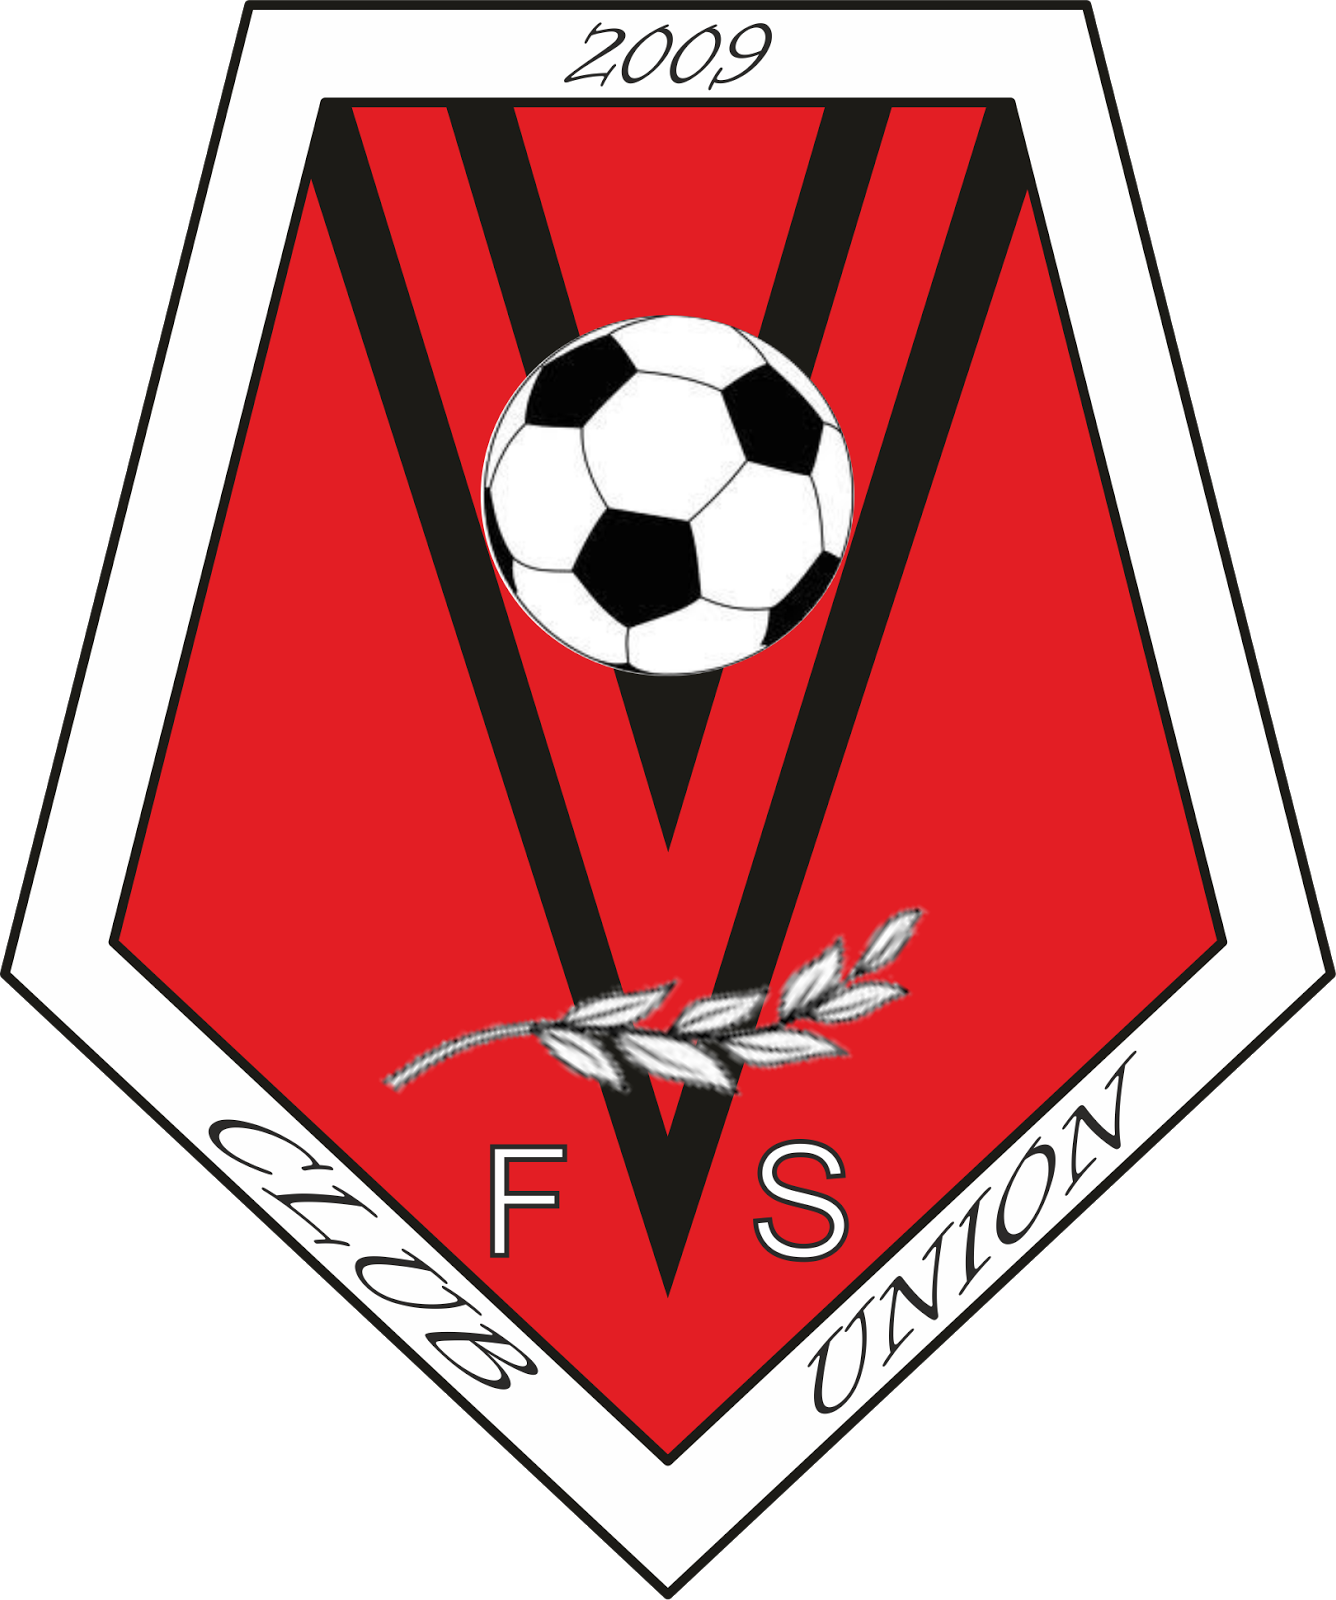 Logotipo Club Unión F.S.